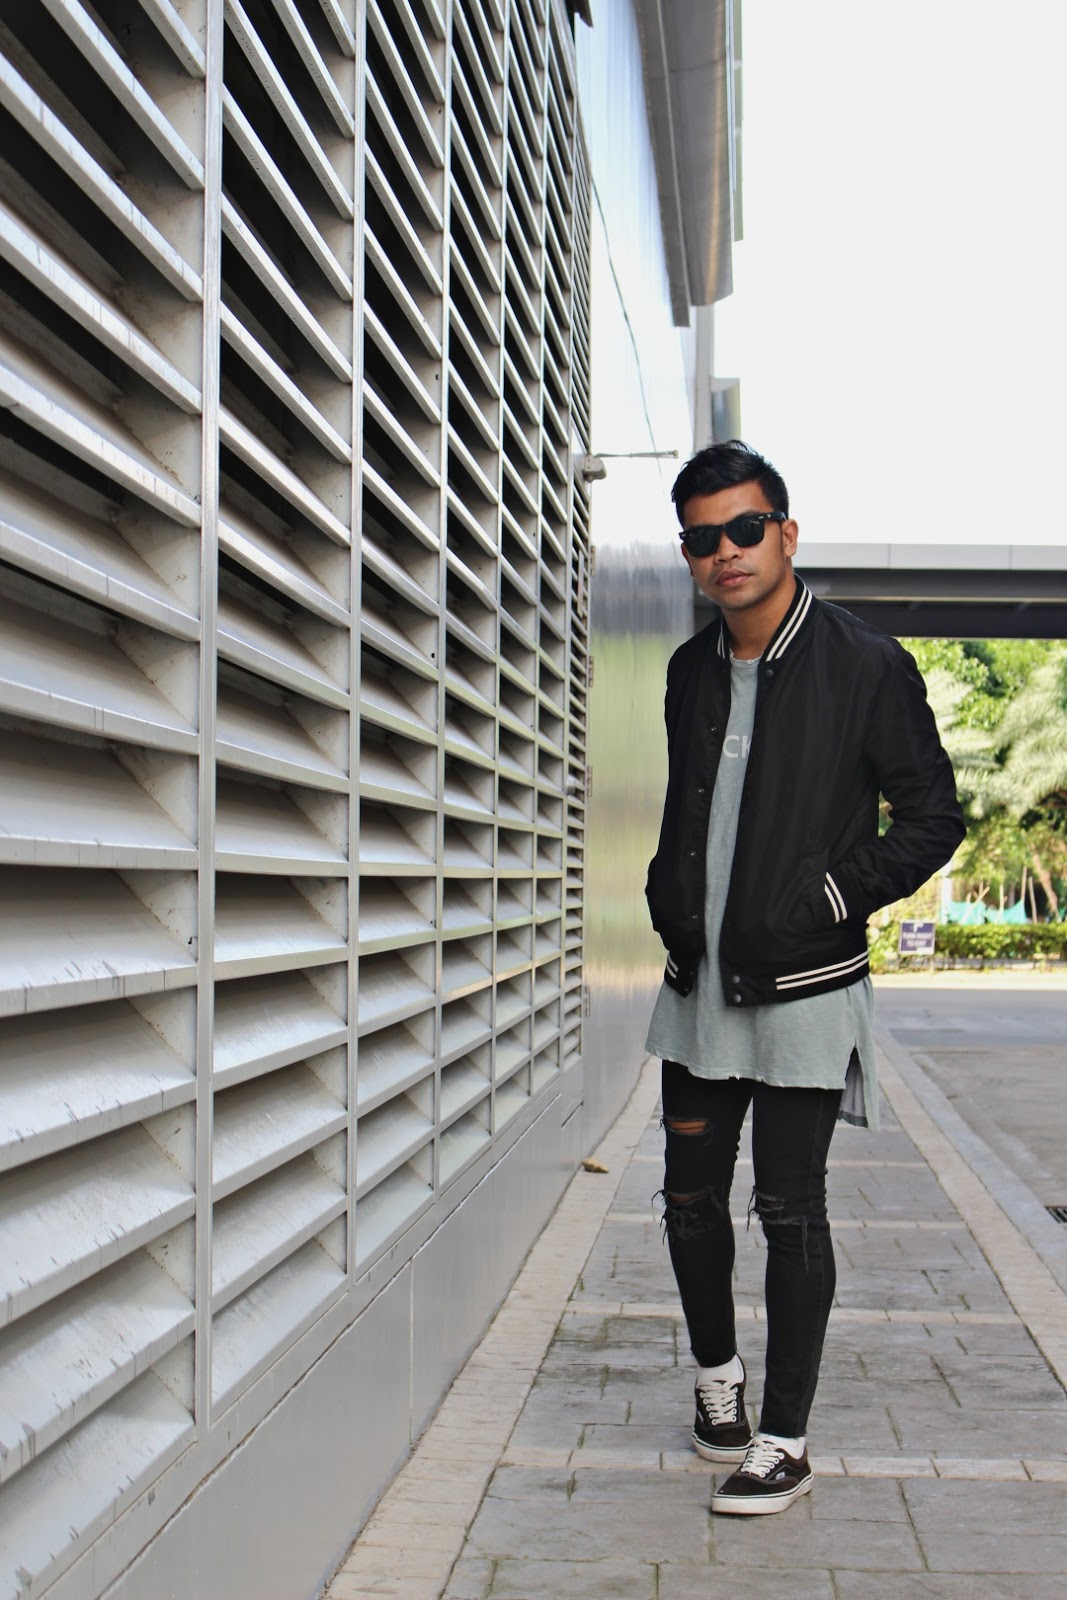 fashion-men-cebu-blogger-almostablogger.jpg